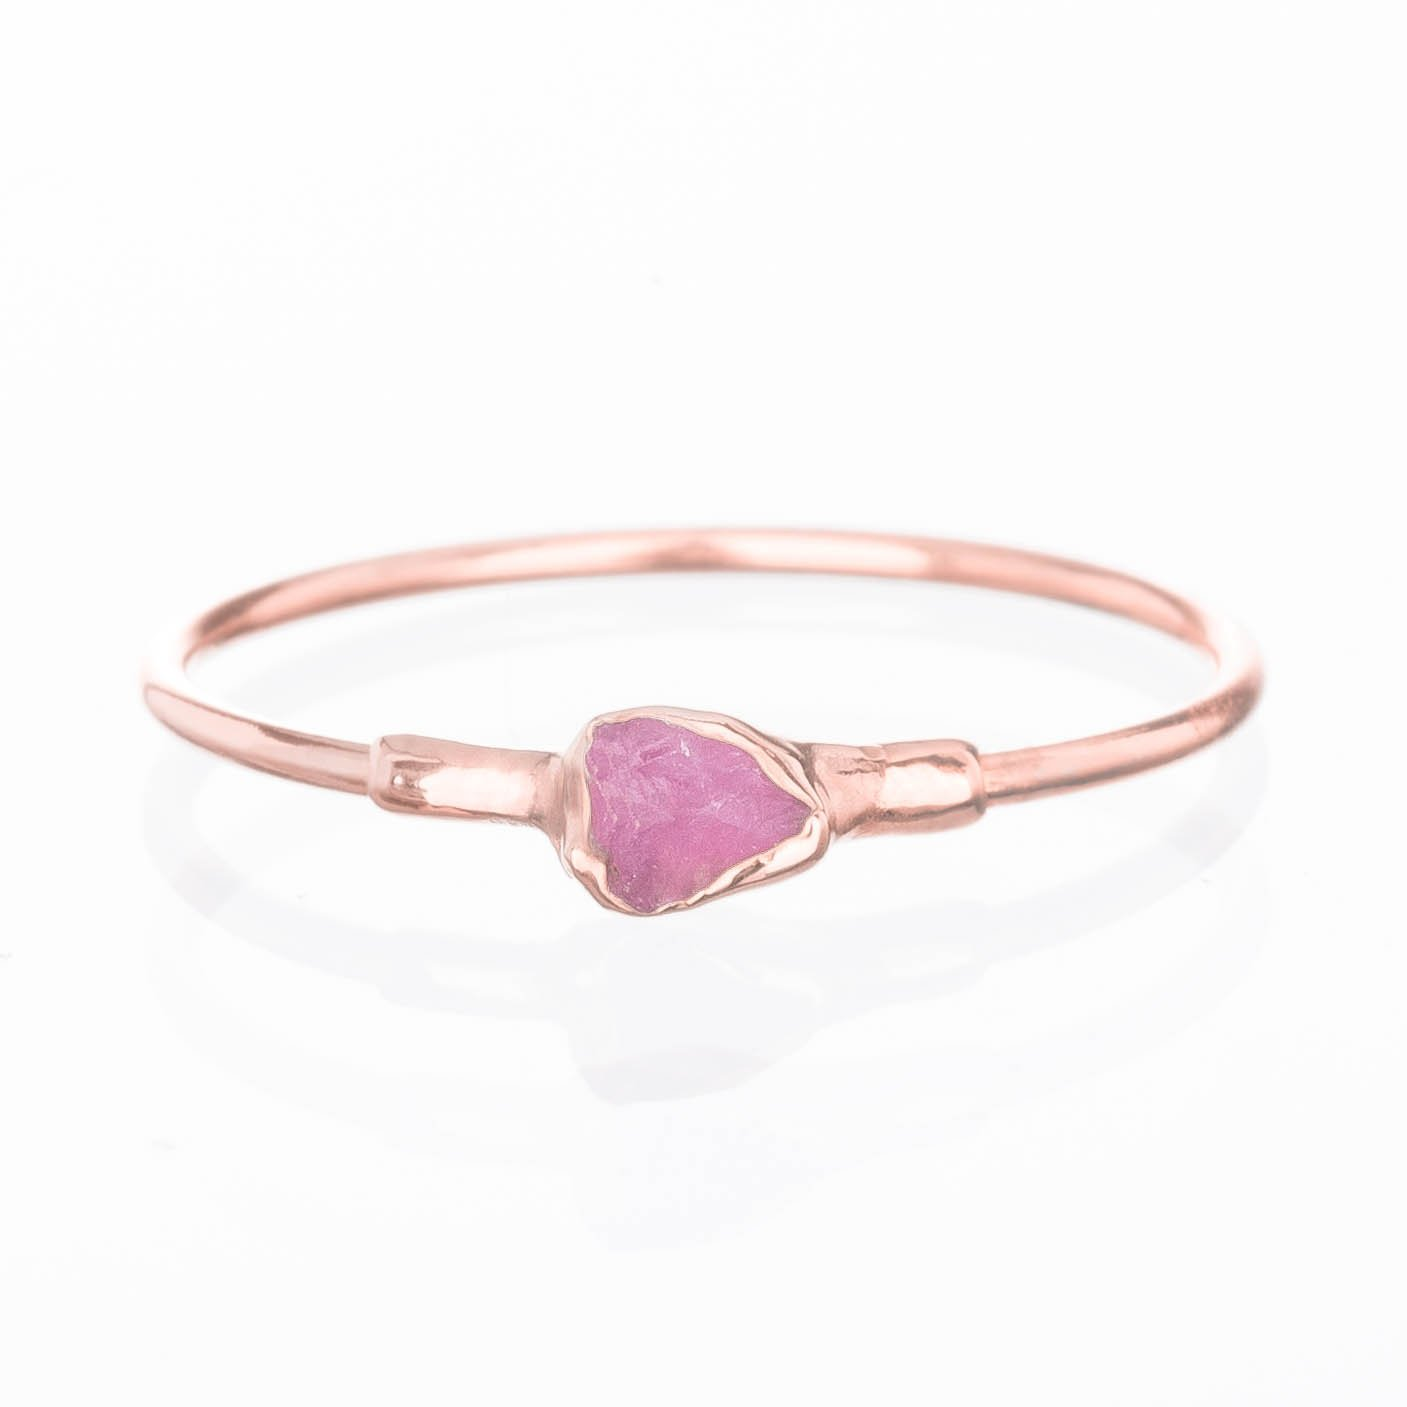 Raw Ruby Ring, Rose Gold, Size 6, Dainty Boho Style Jewelry